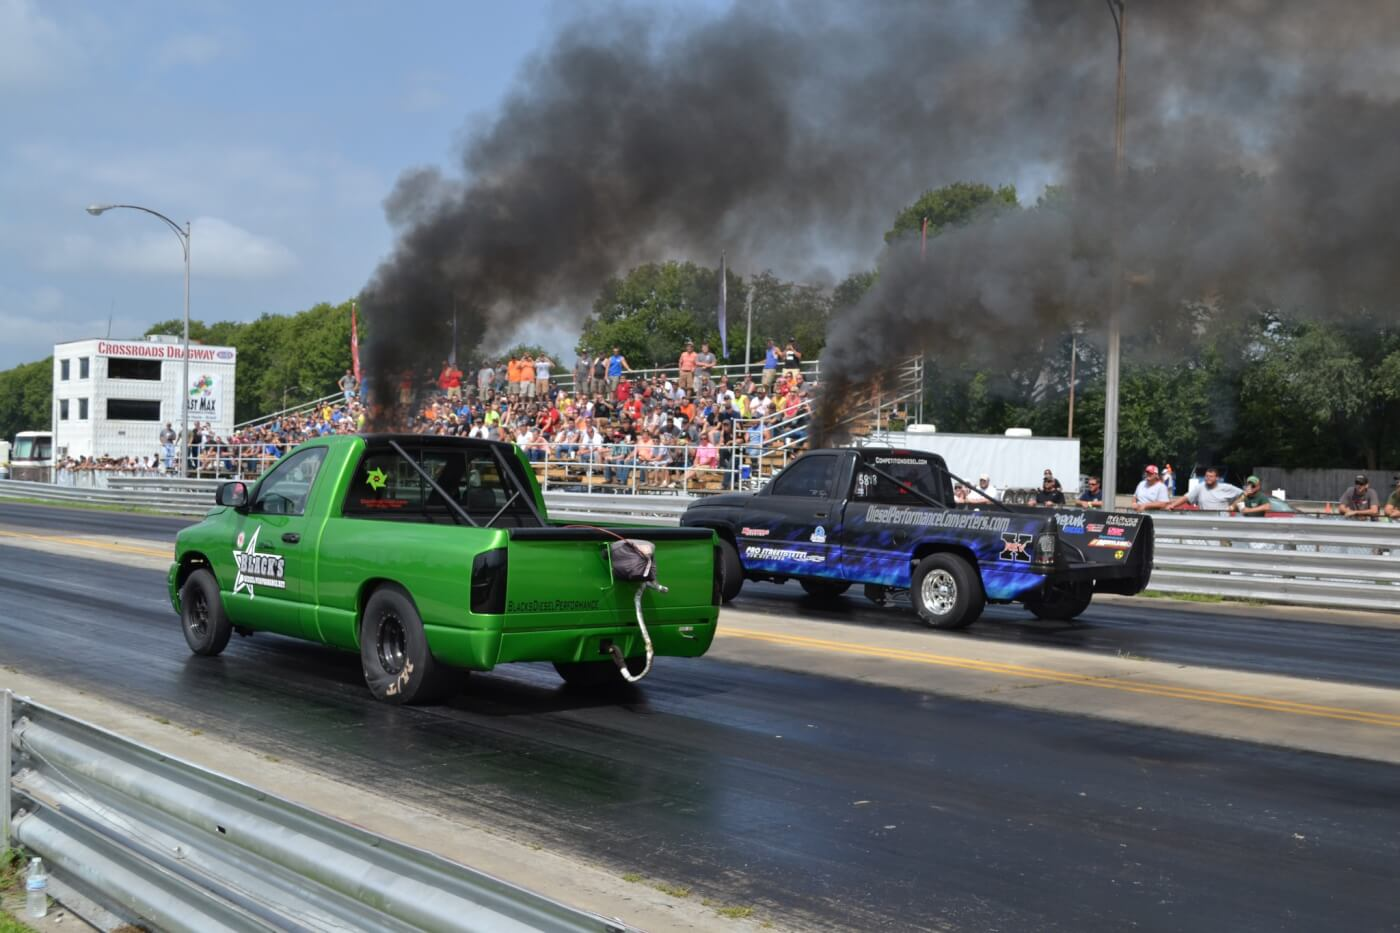 Here's an example of the popular 2wd versus 4wd battle that occurs on drag strips across the country. As you can see by the race here, competition is almost always close!